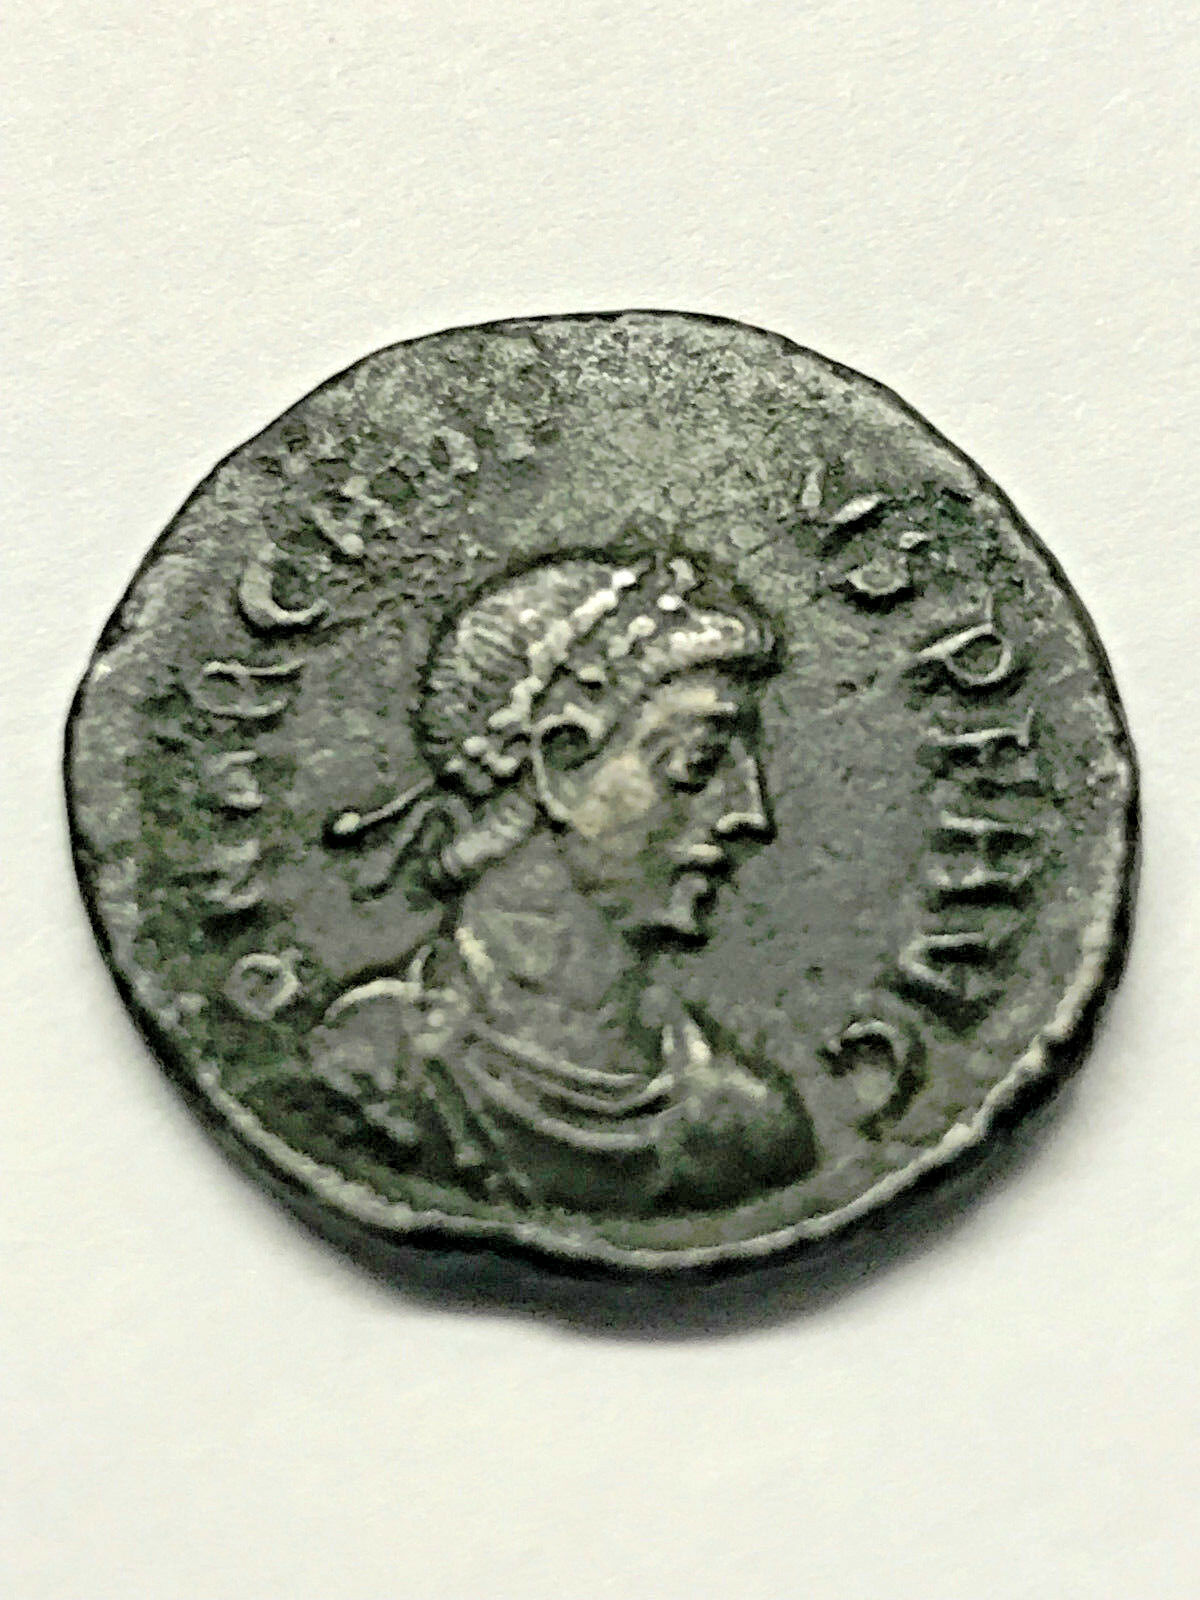 Ancient Roman Imperial Constantine The Great Era Ancient Bronze 300 A.D. #9027